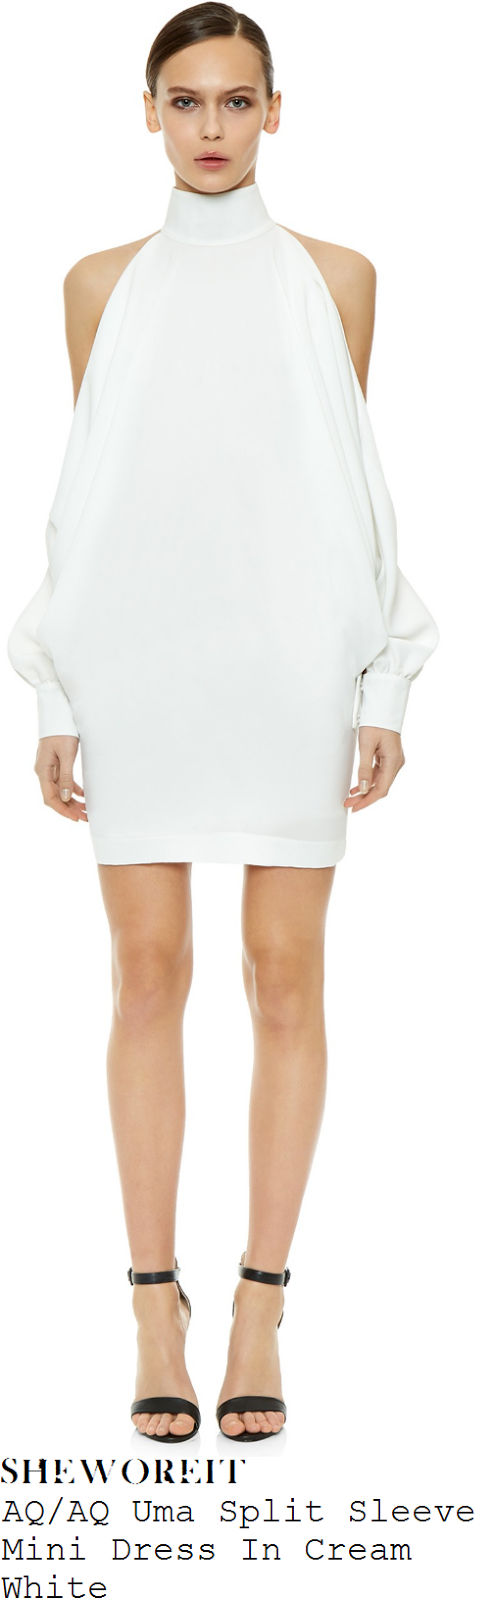 chloe-sims-aq-aq-uma-cream-white-long-split-sleeve-cold-shoulder-high-neck-mini-dress